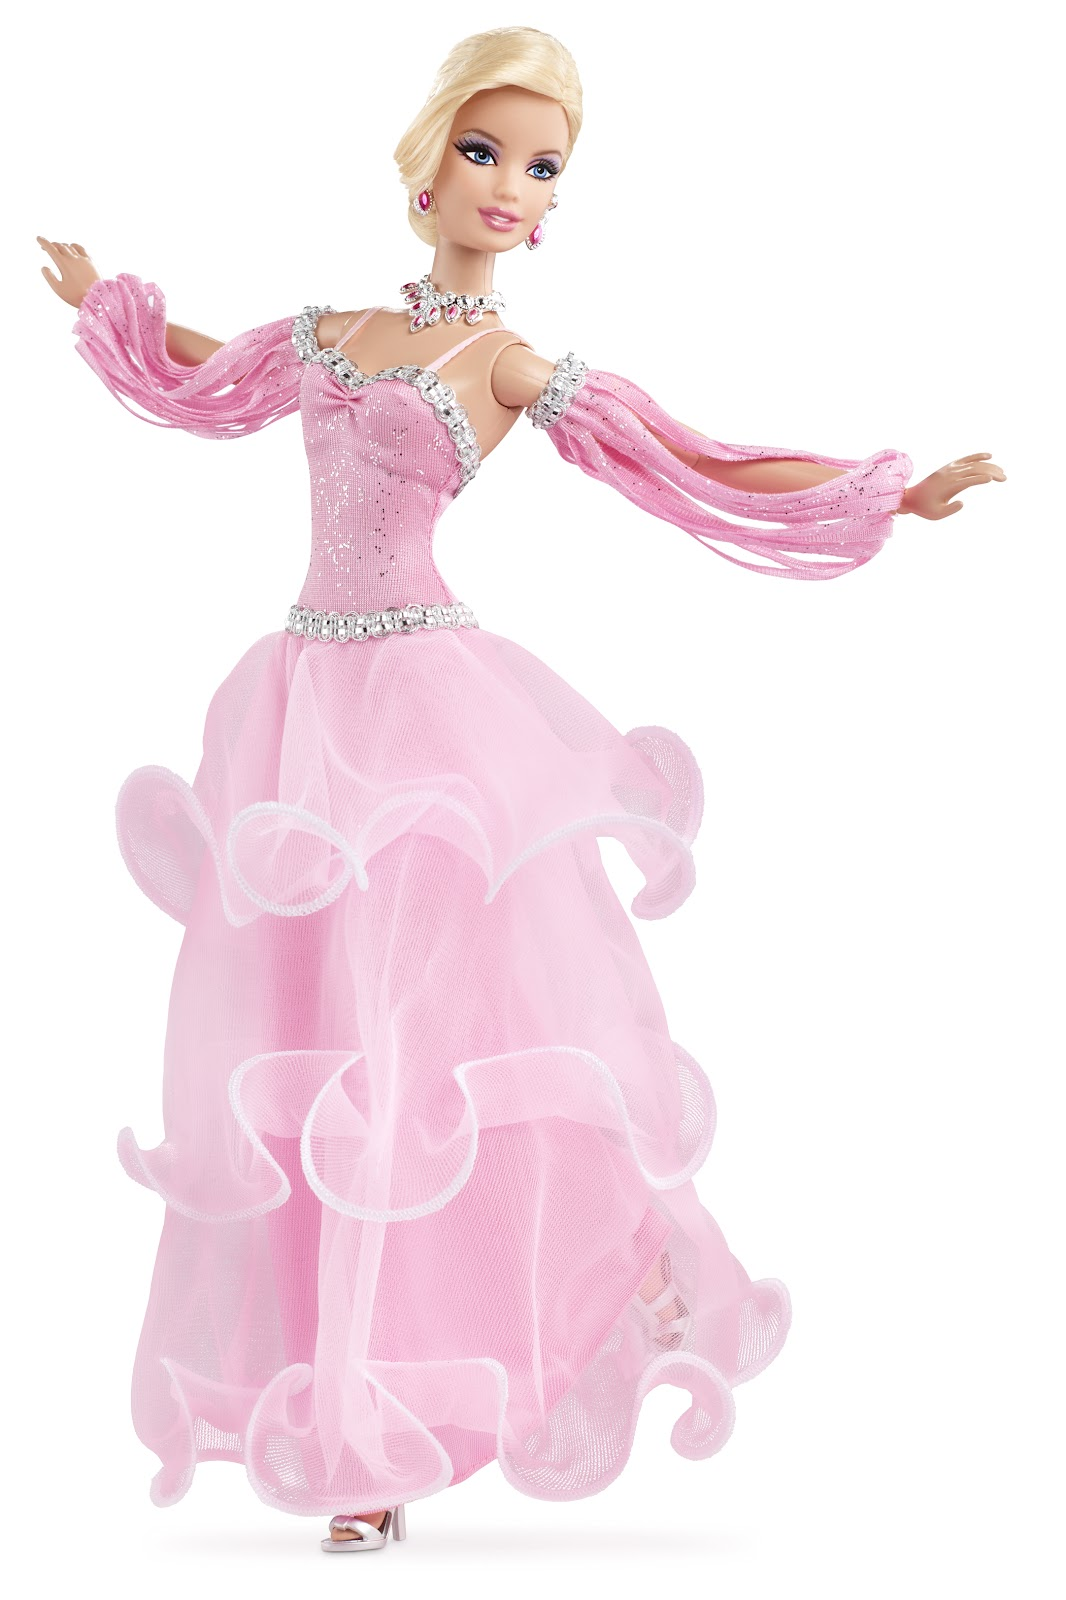 Barbie pictures and wallpapers Beautiful barbie pics 1066x1600